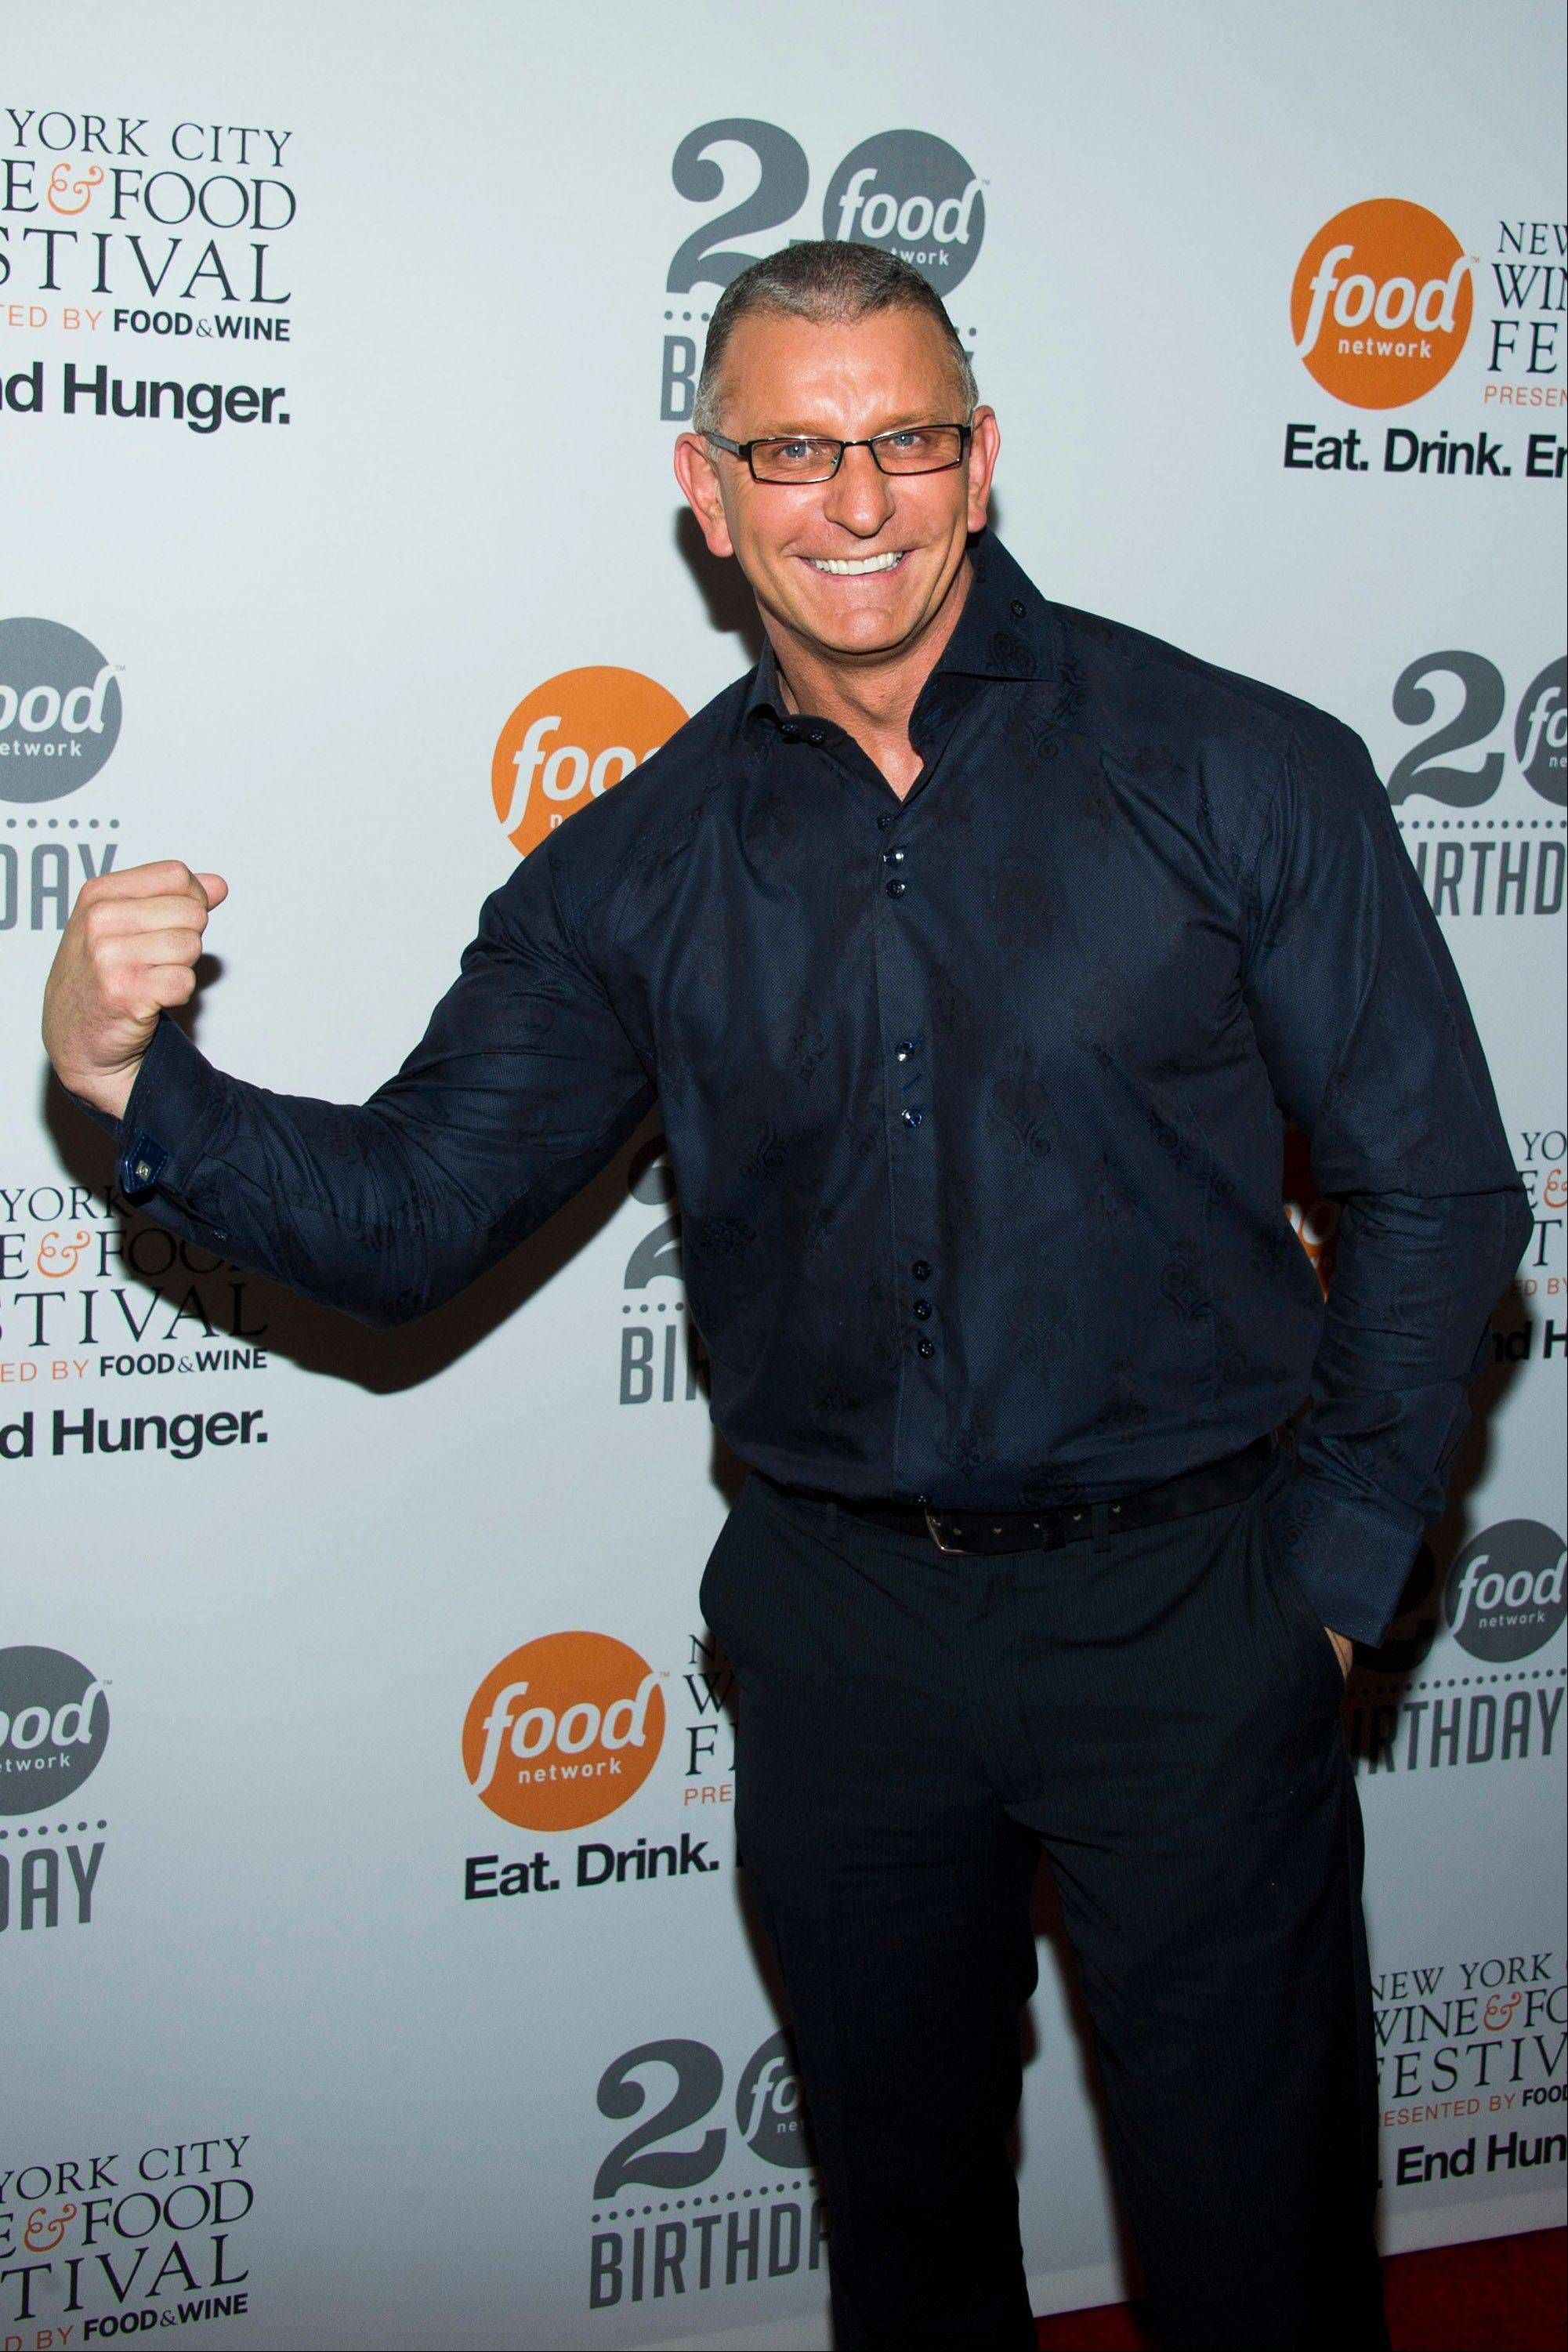 Robert Irvine attends the Food Network's 20th birthday party on Thursday in New York.